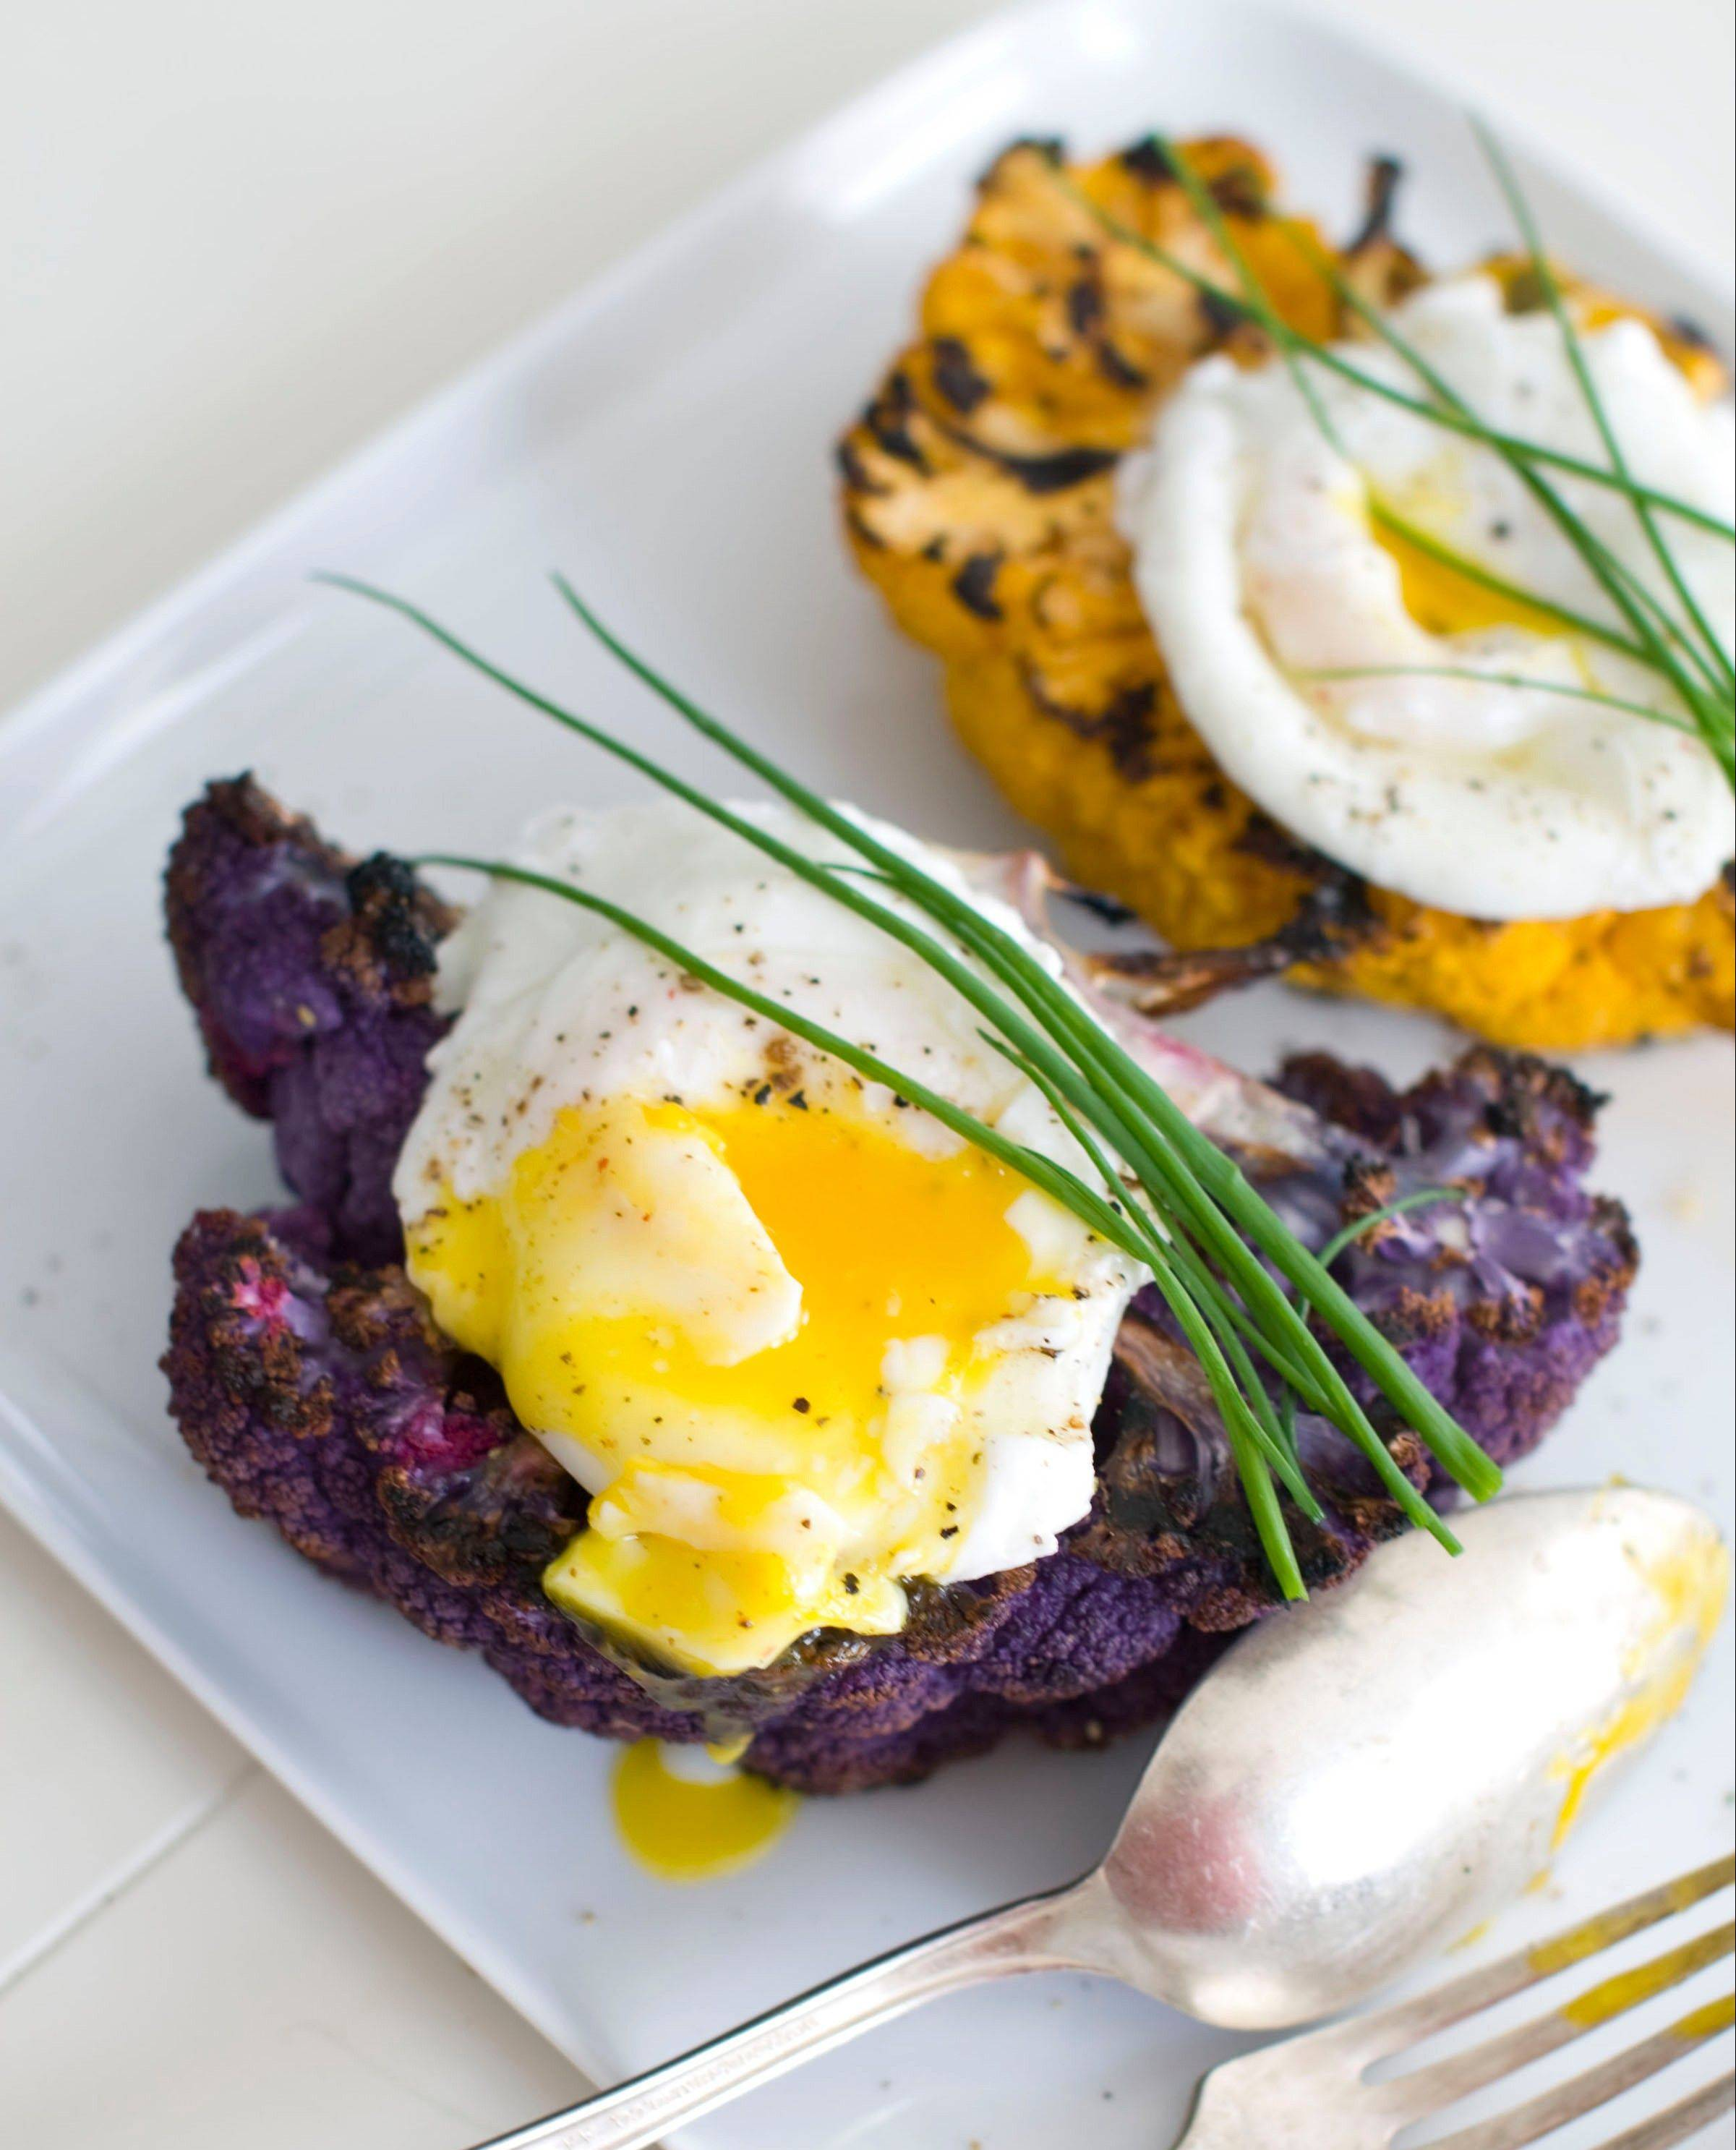 Grilled Cauliflower Steaks with Poached Eggs and Truffle Oil